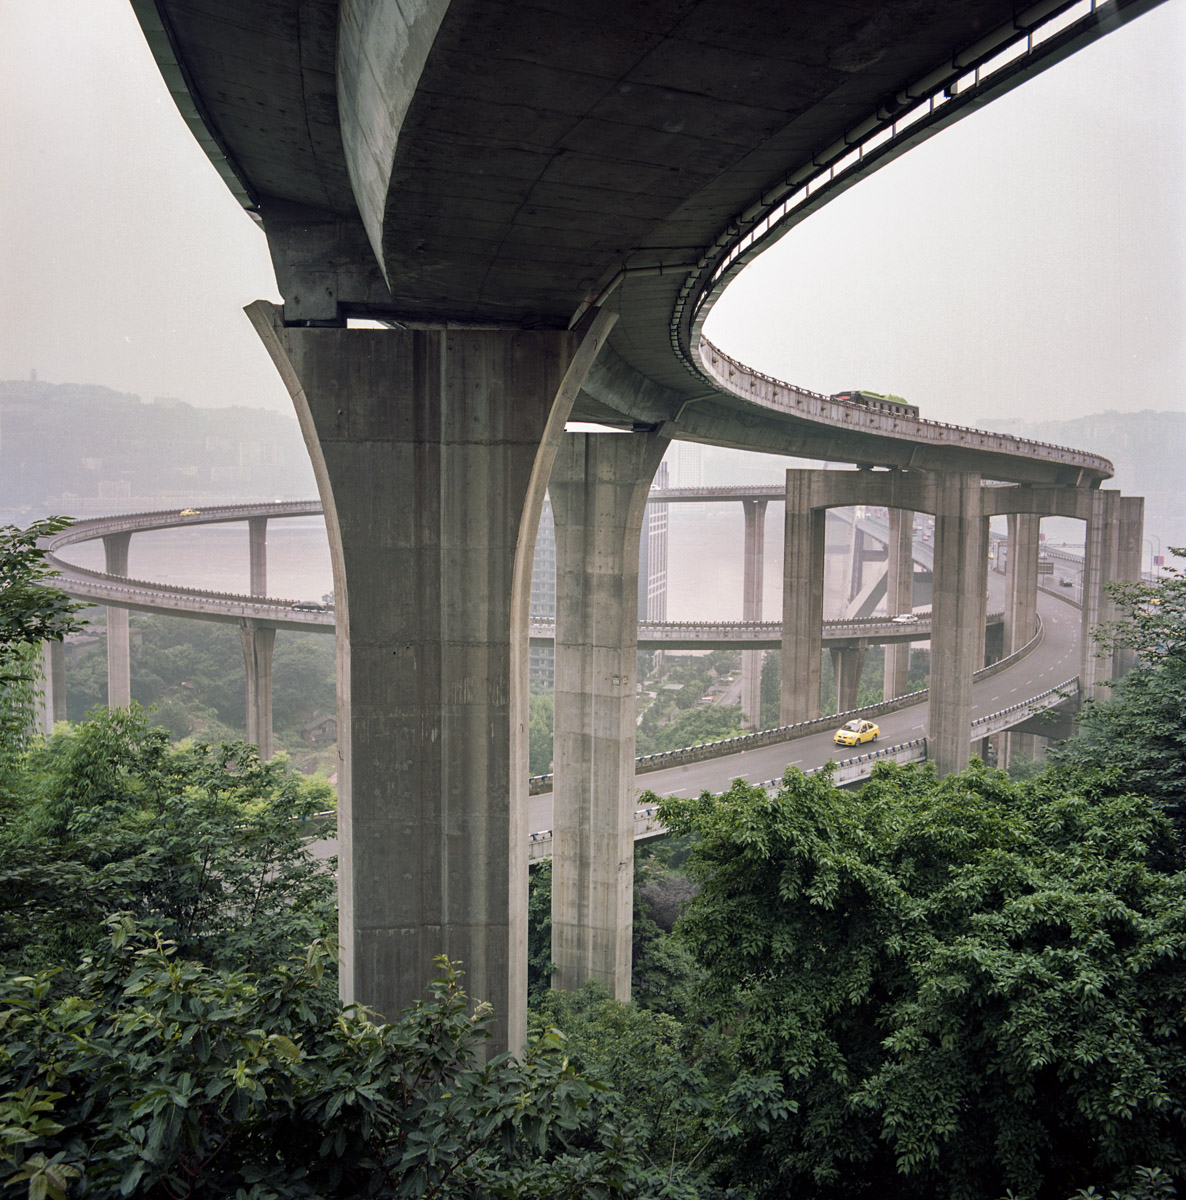 The bridge and its arch seen from the Nanping district